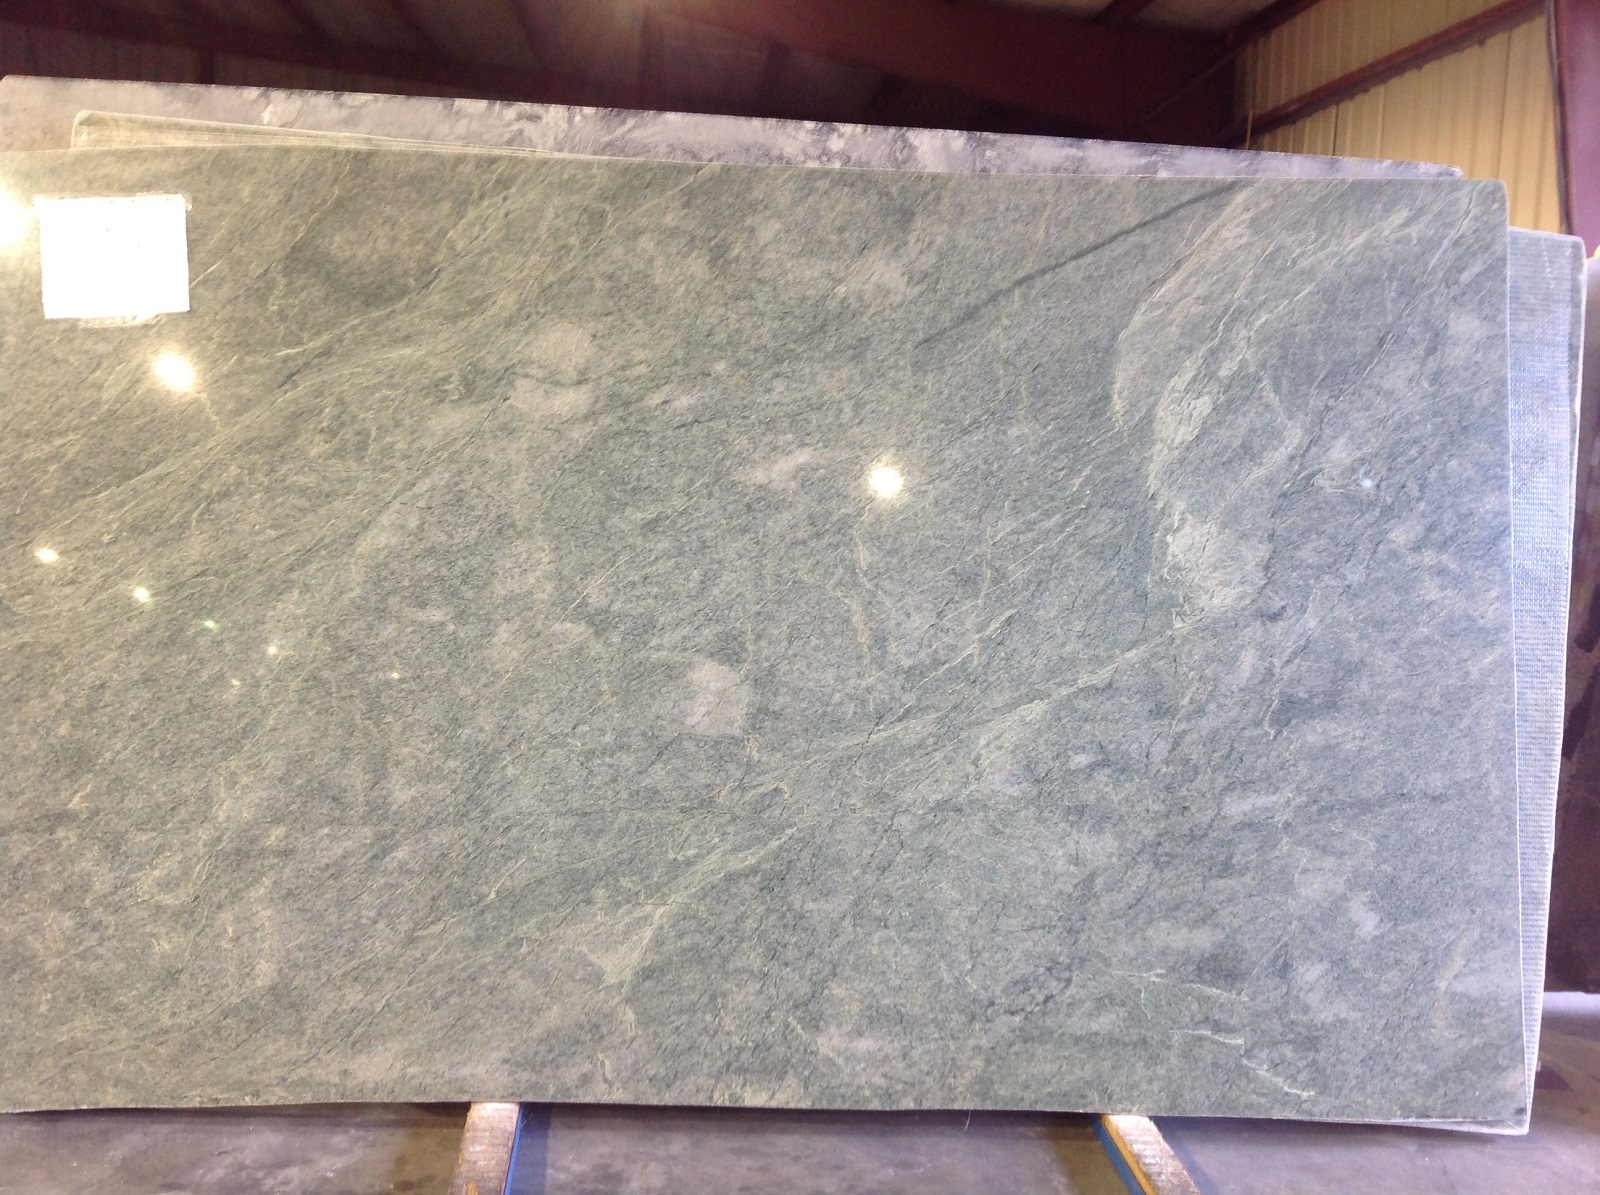 Granite Countertops Cincinnati Ohio Costa Esmeralda Omicron Granite And Tile